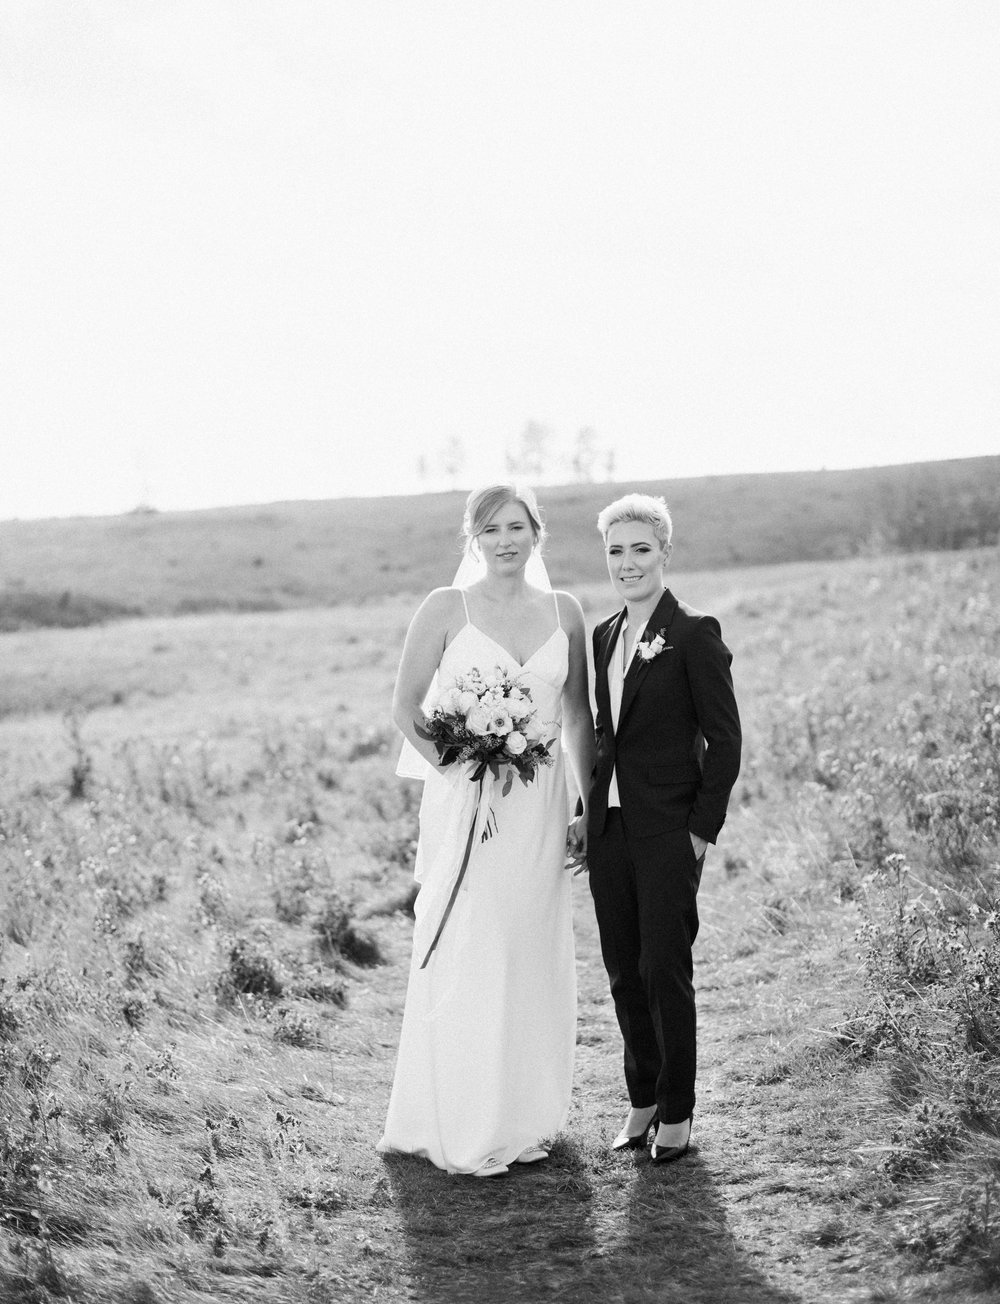 018-calgary_wedding_photographers.jpg